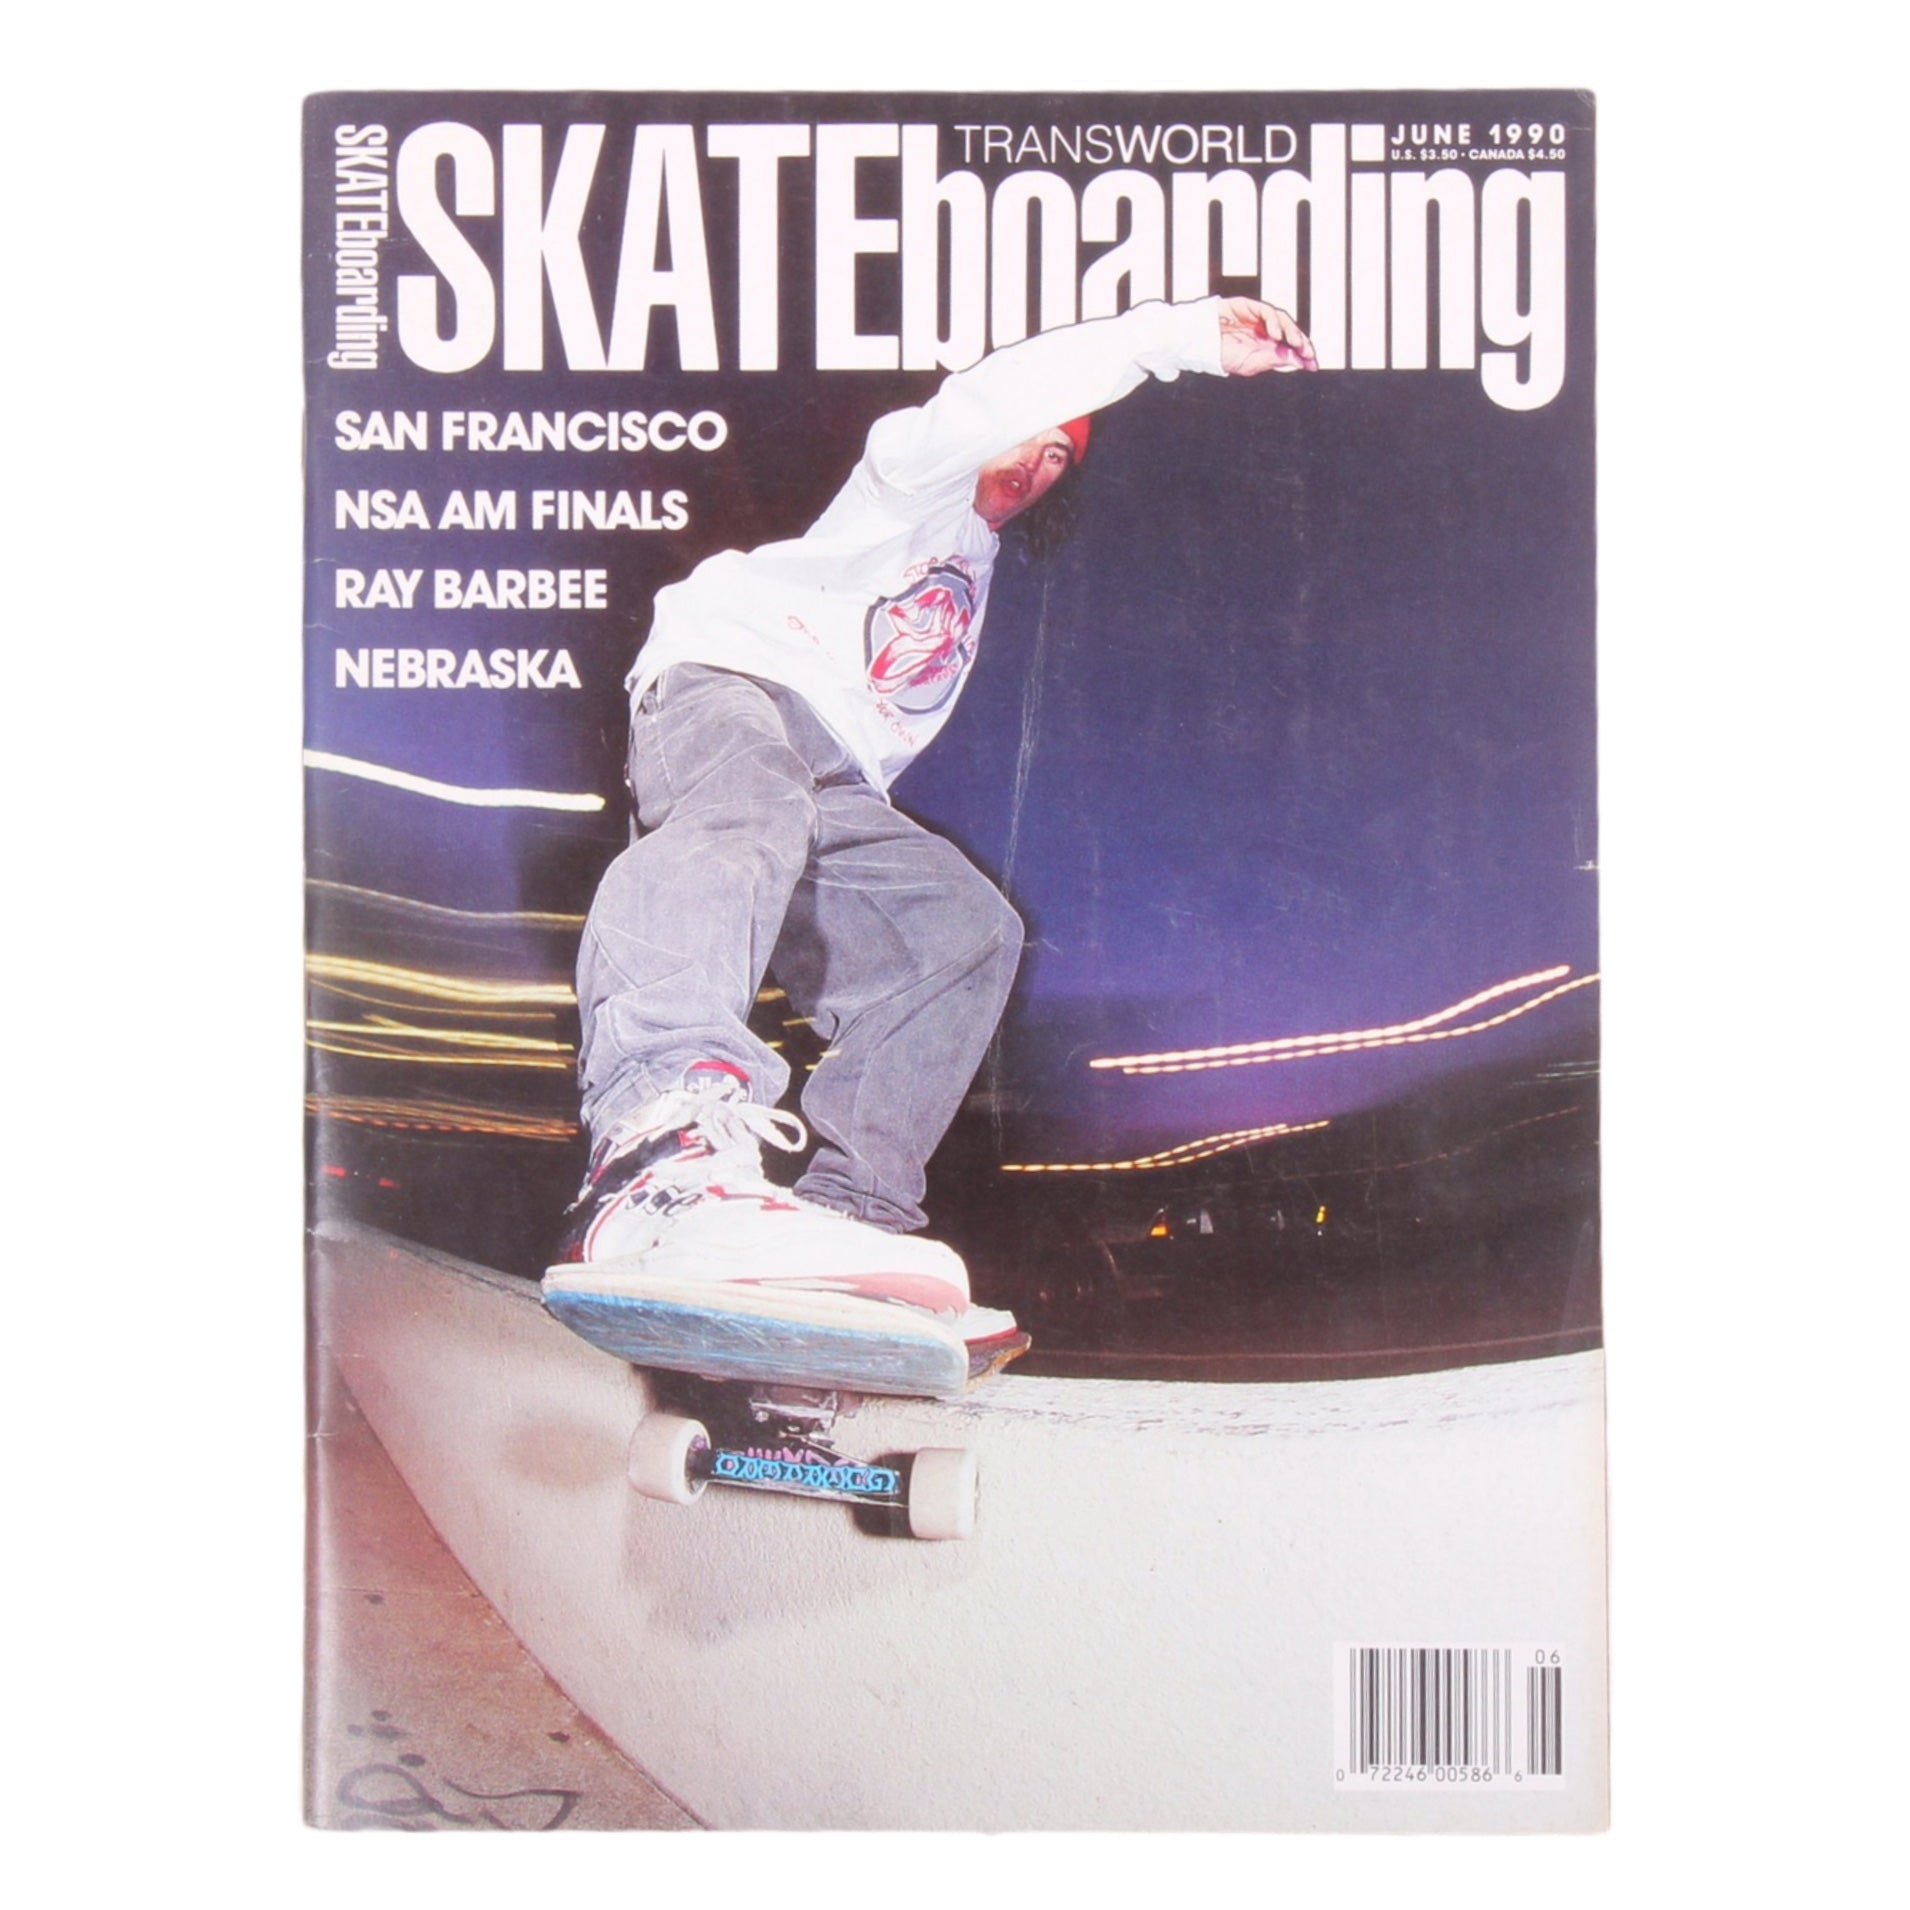 Overripe Transworld Skateboarding Magazine TWS June 1990